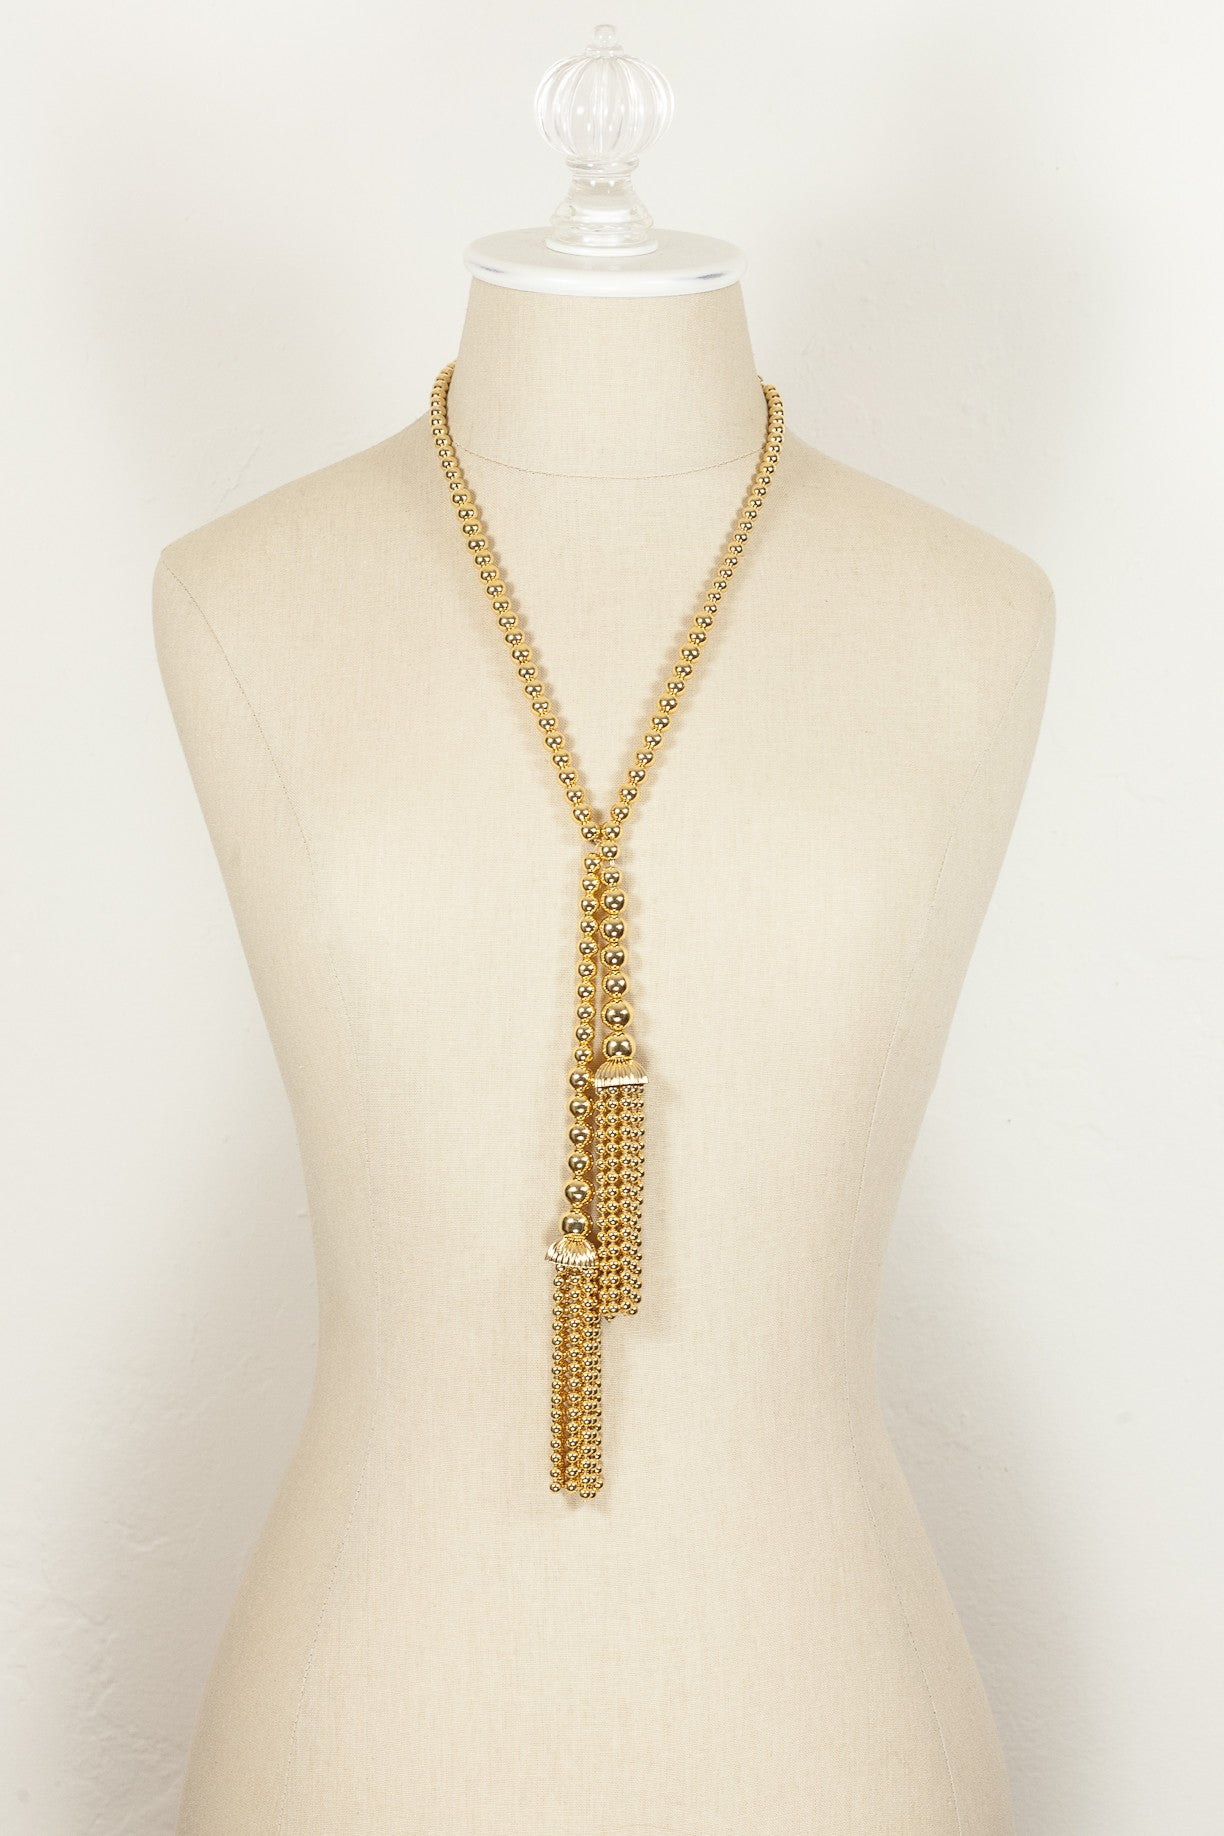 80's__Joan Rivers__Wrap Tassel Necklace